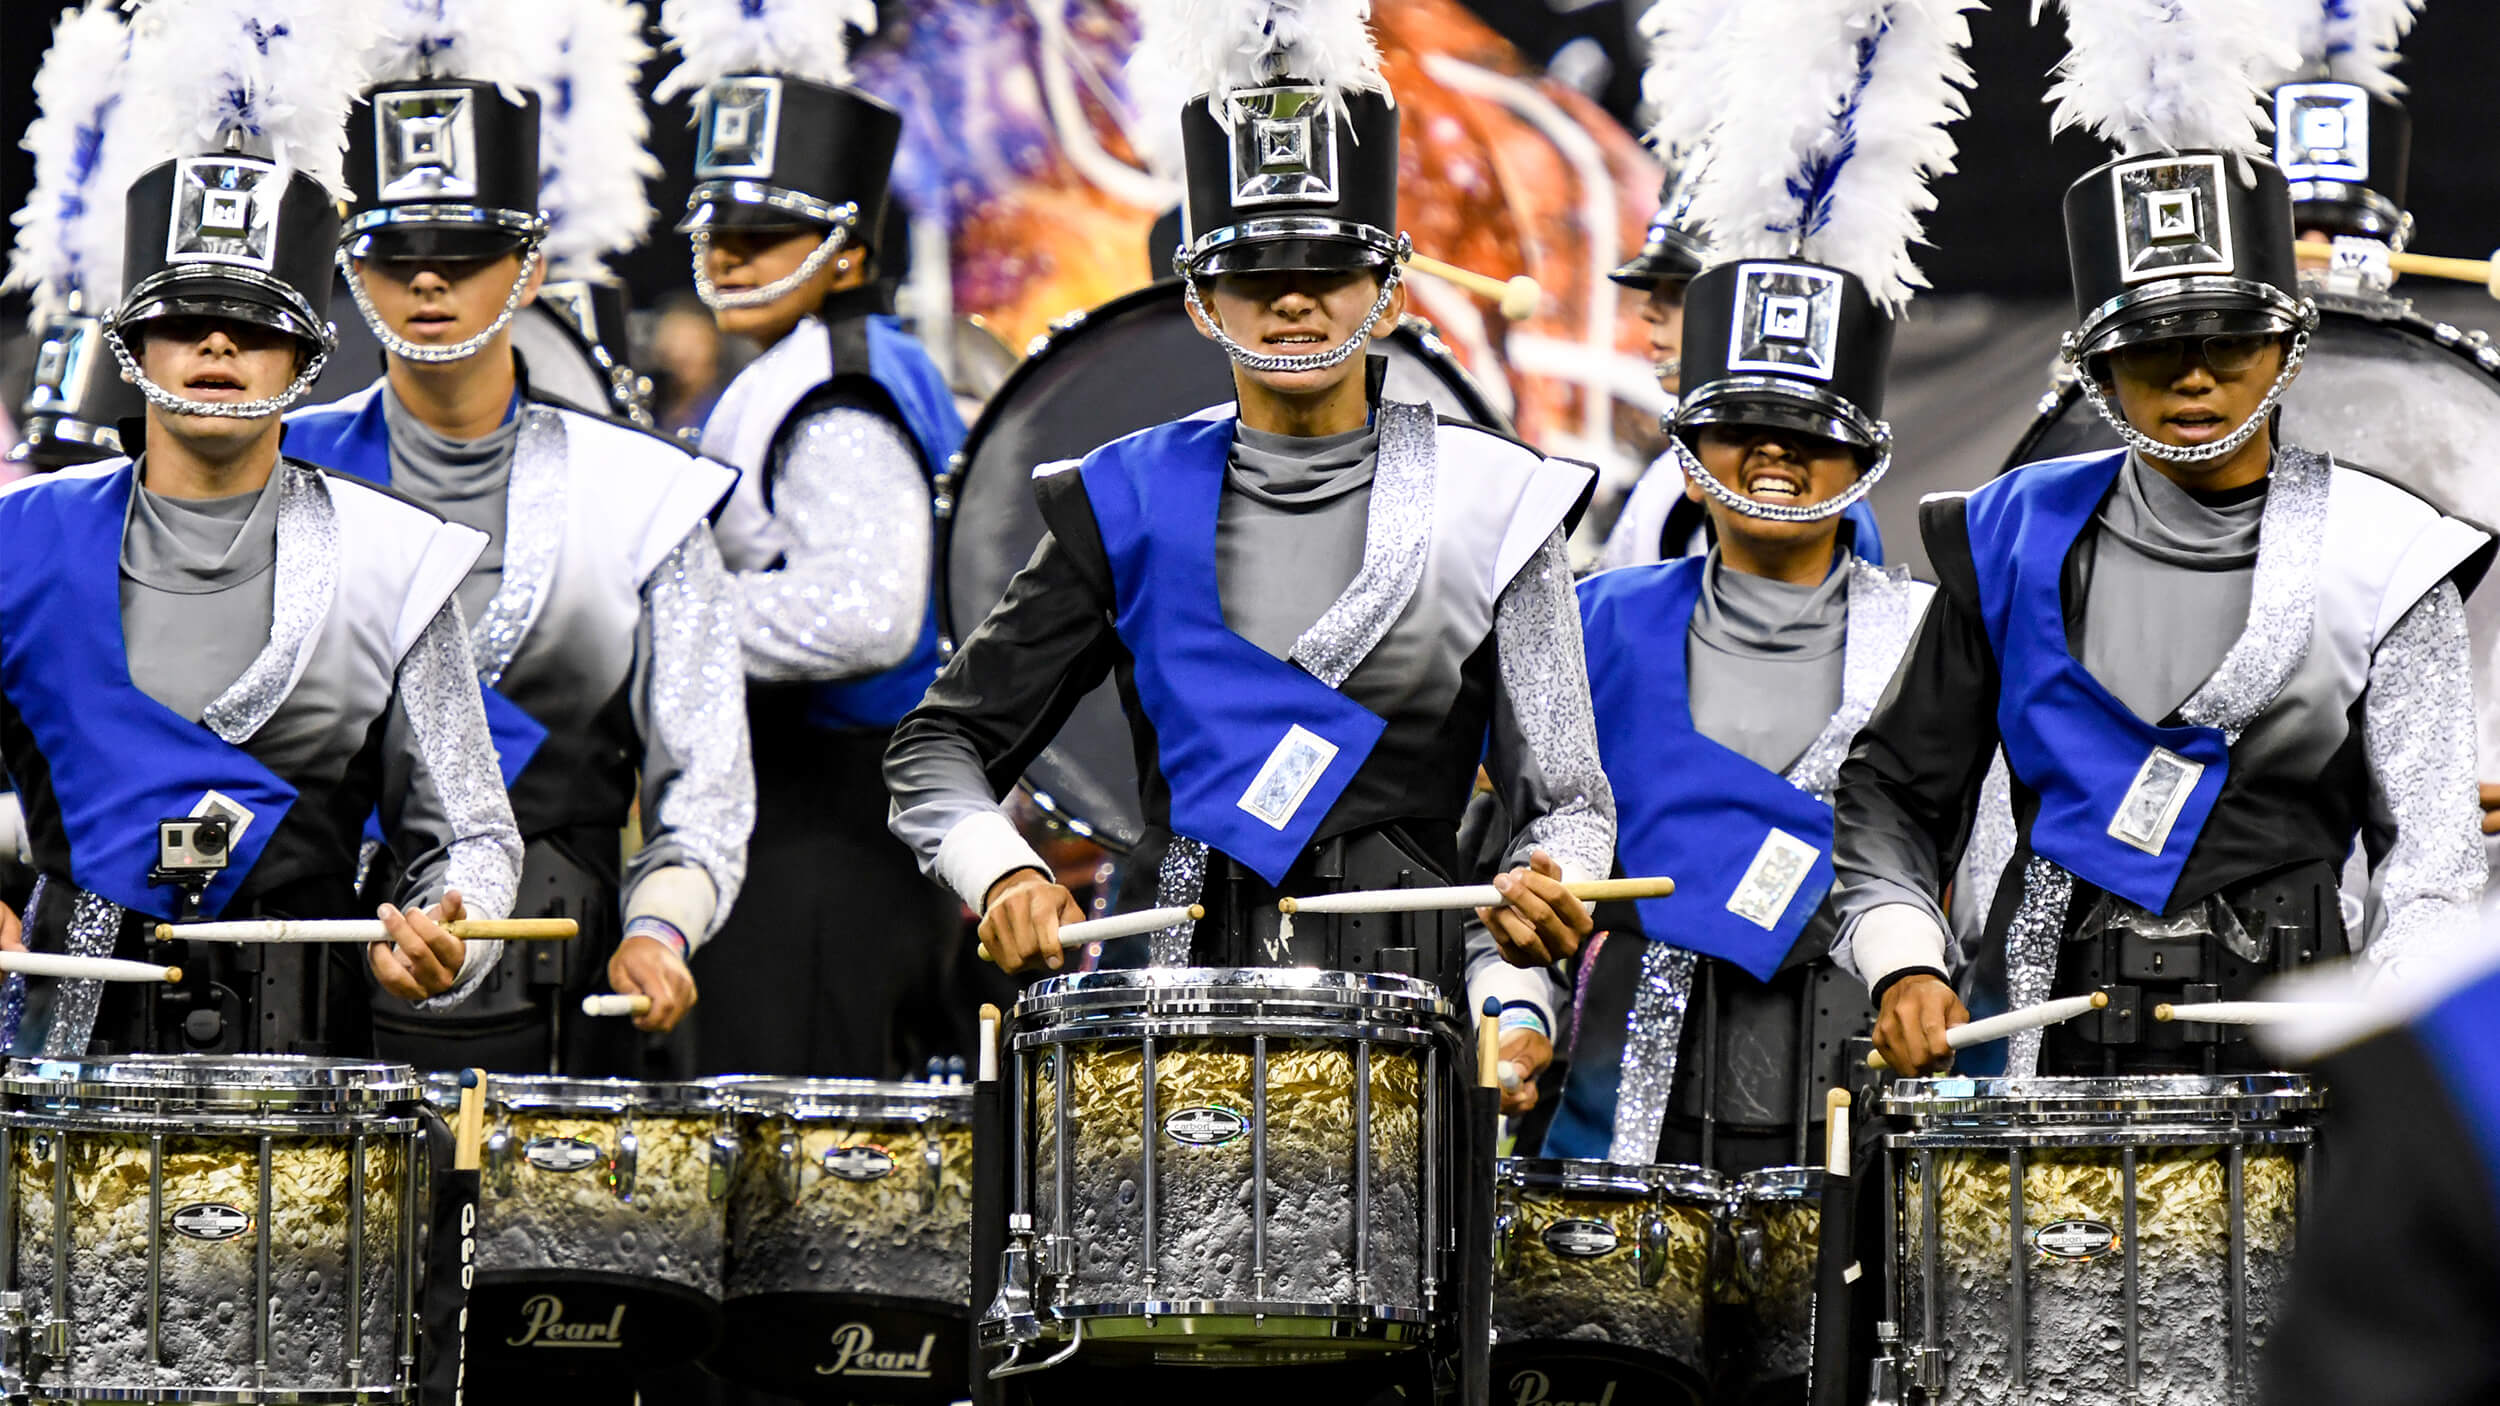 Every Open Class Best Percussion Performance caption award winner of the 2010s